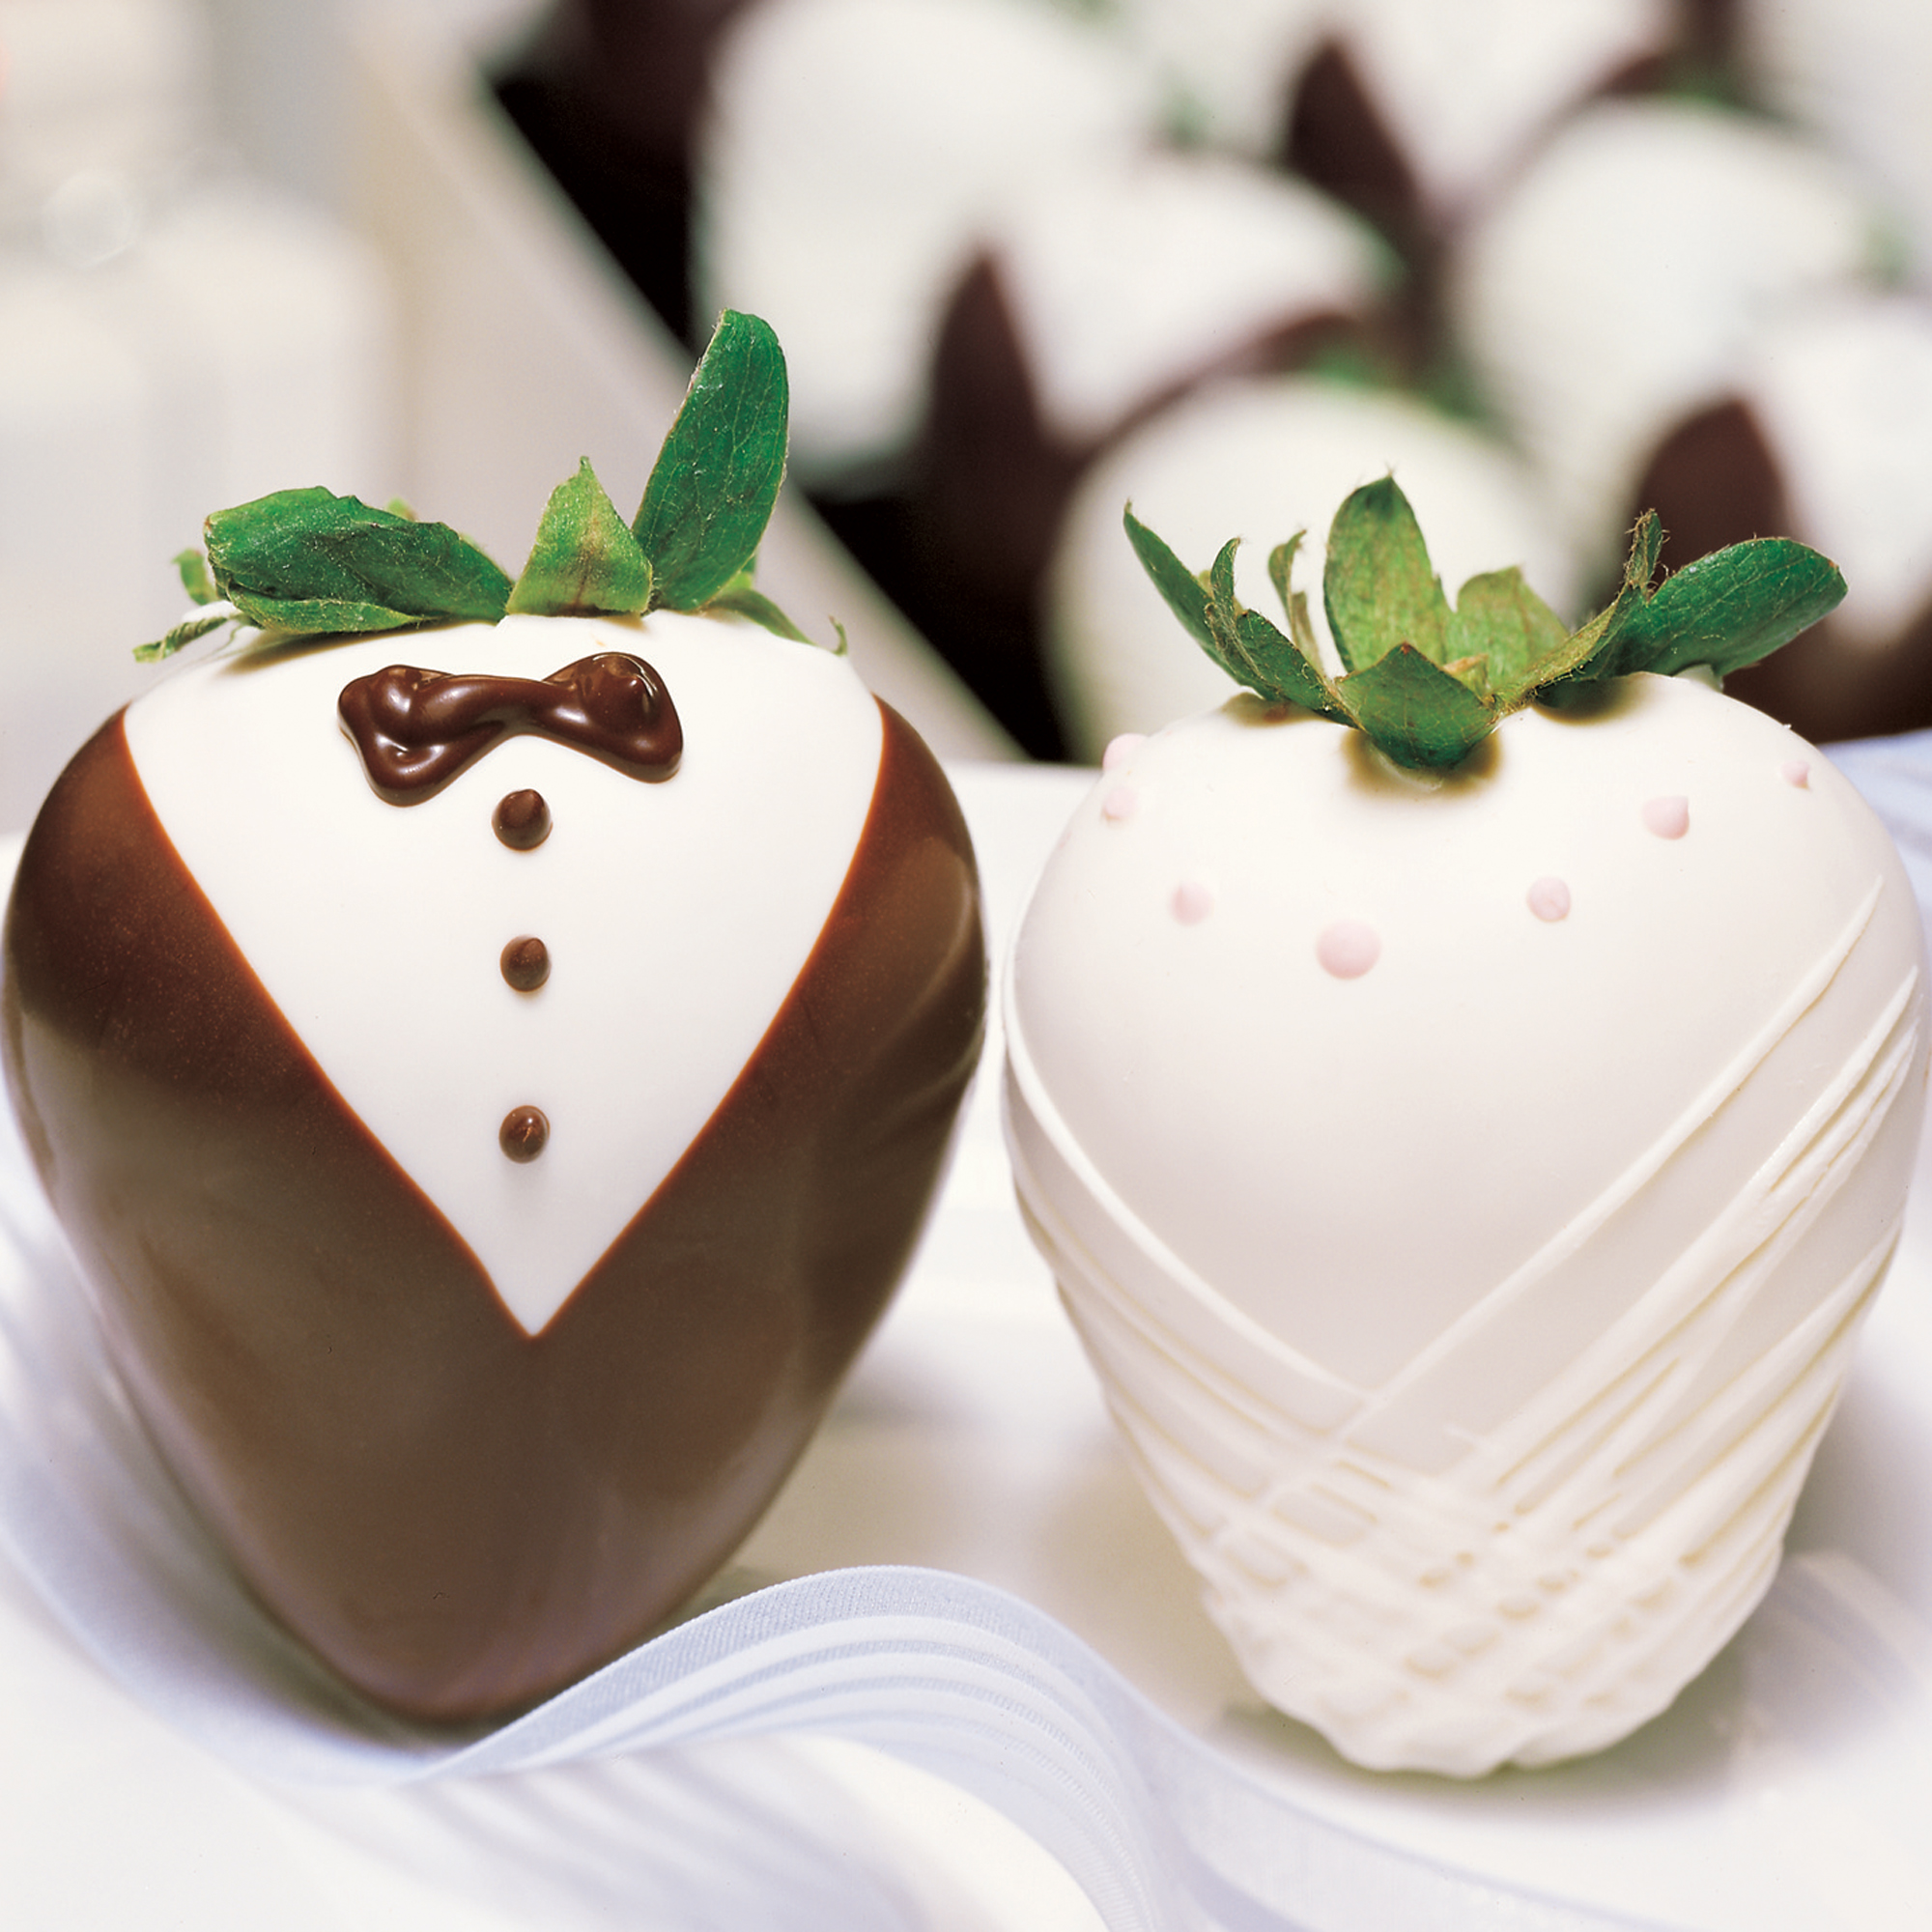 ... and Tuxedo Gourmet Strawberries – A Unique Treat for Summer Weddings